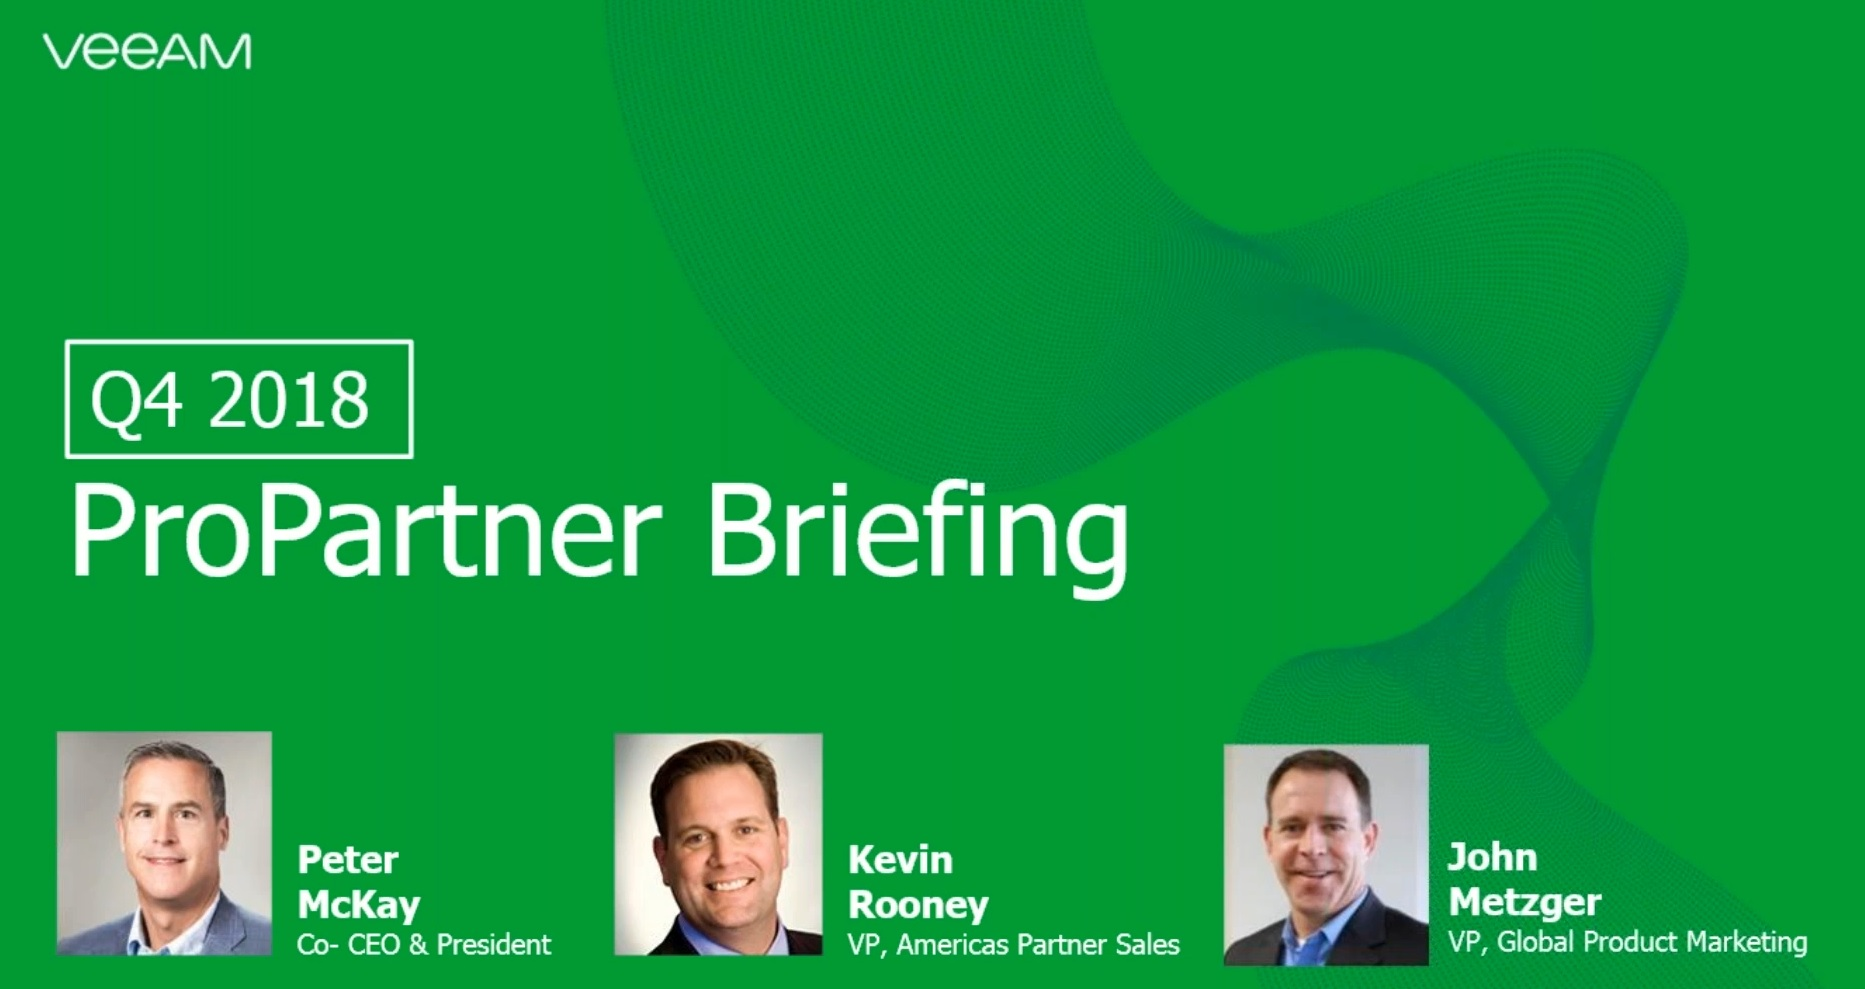 Q4 ProPartner Briefing